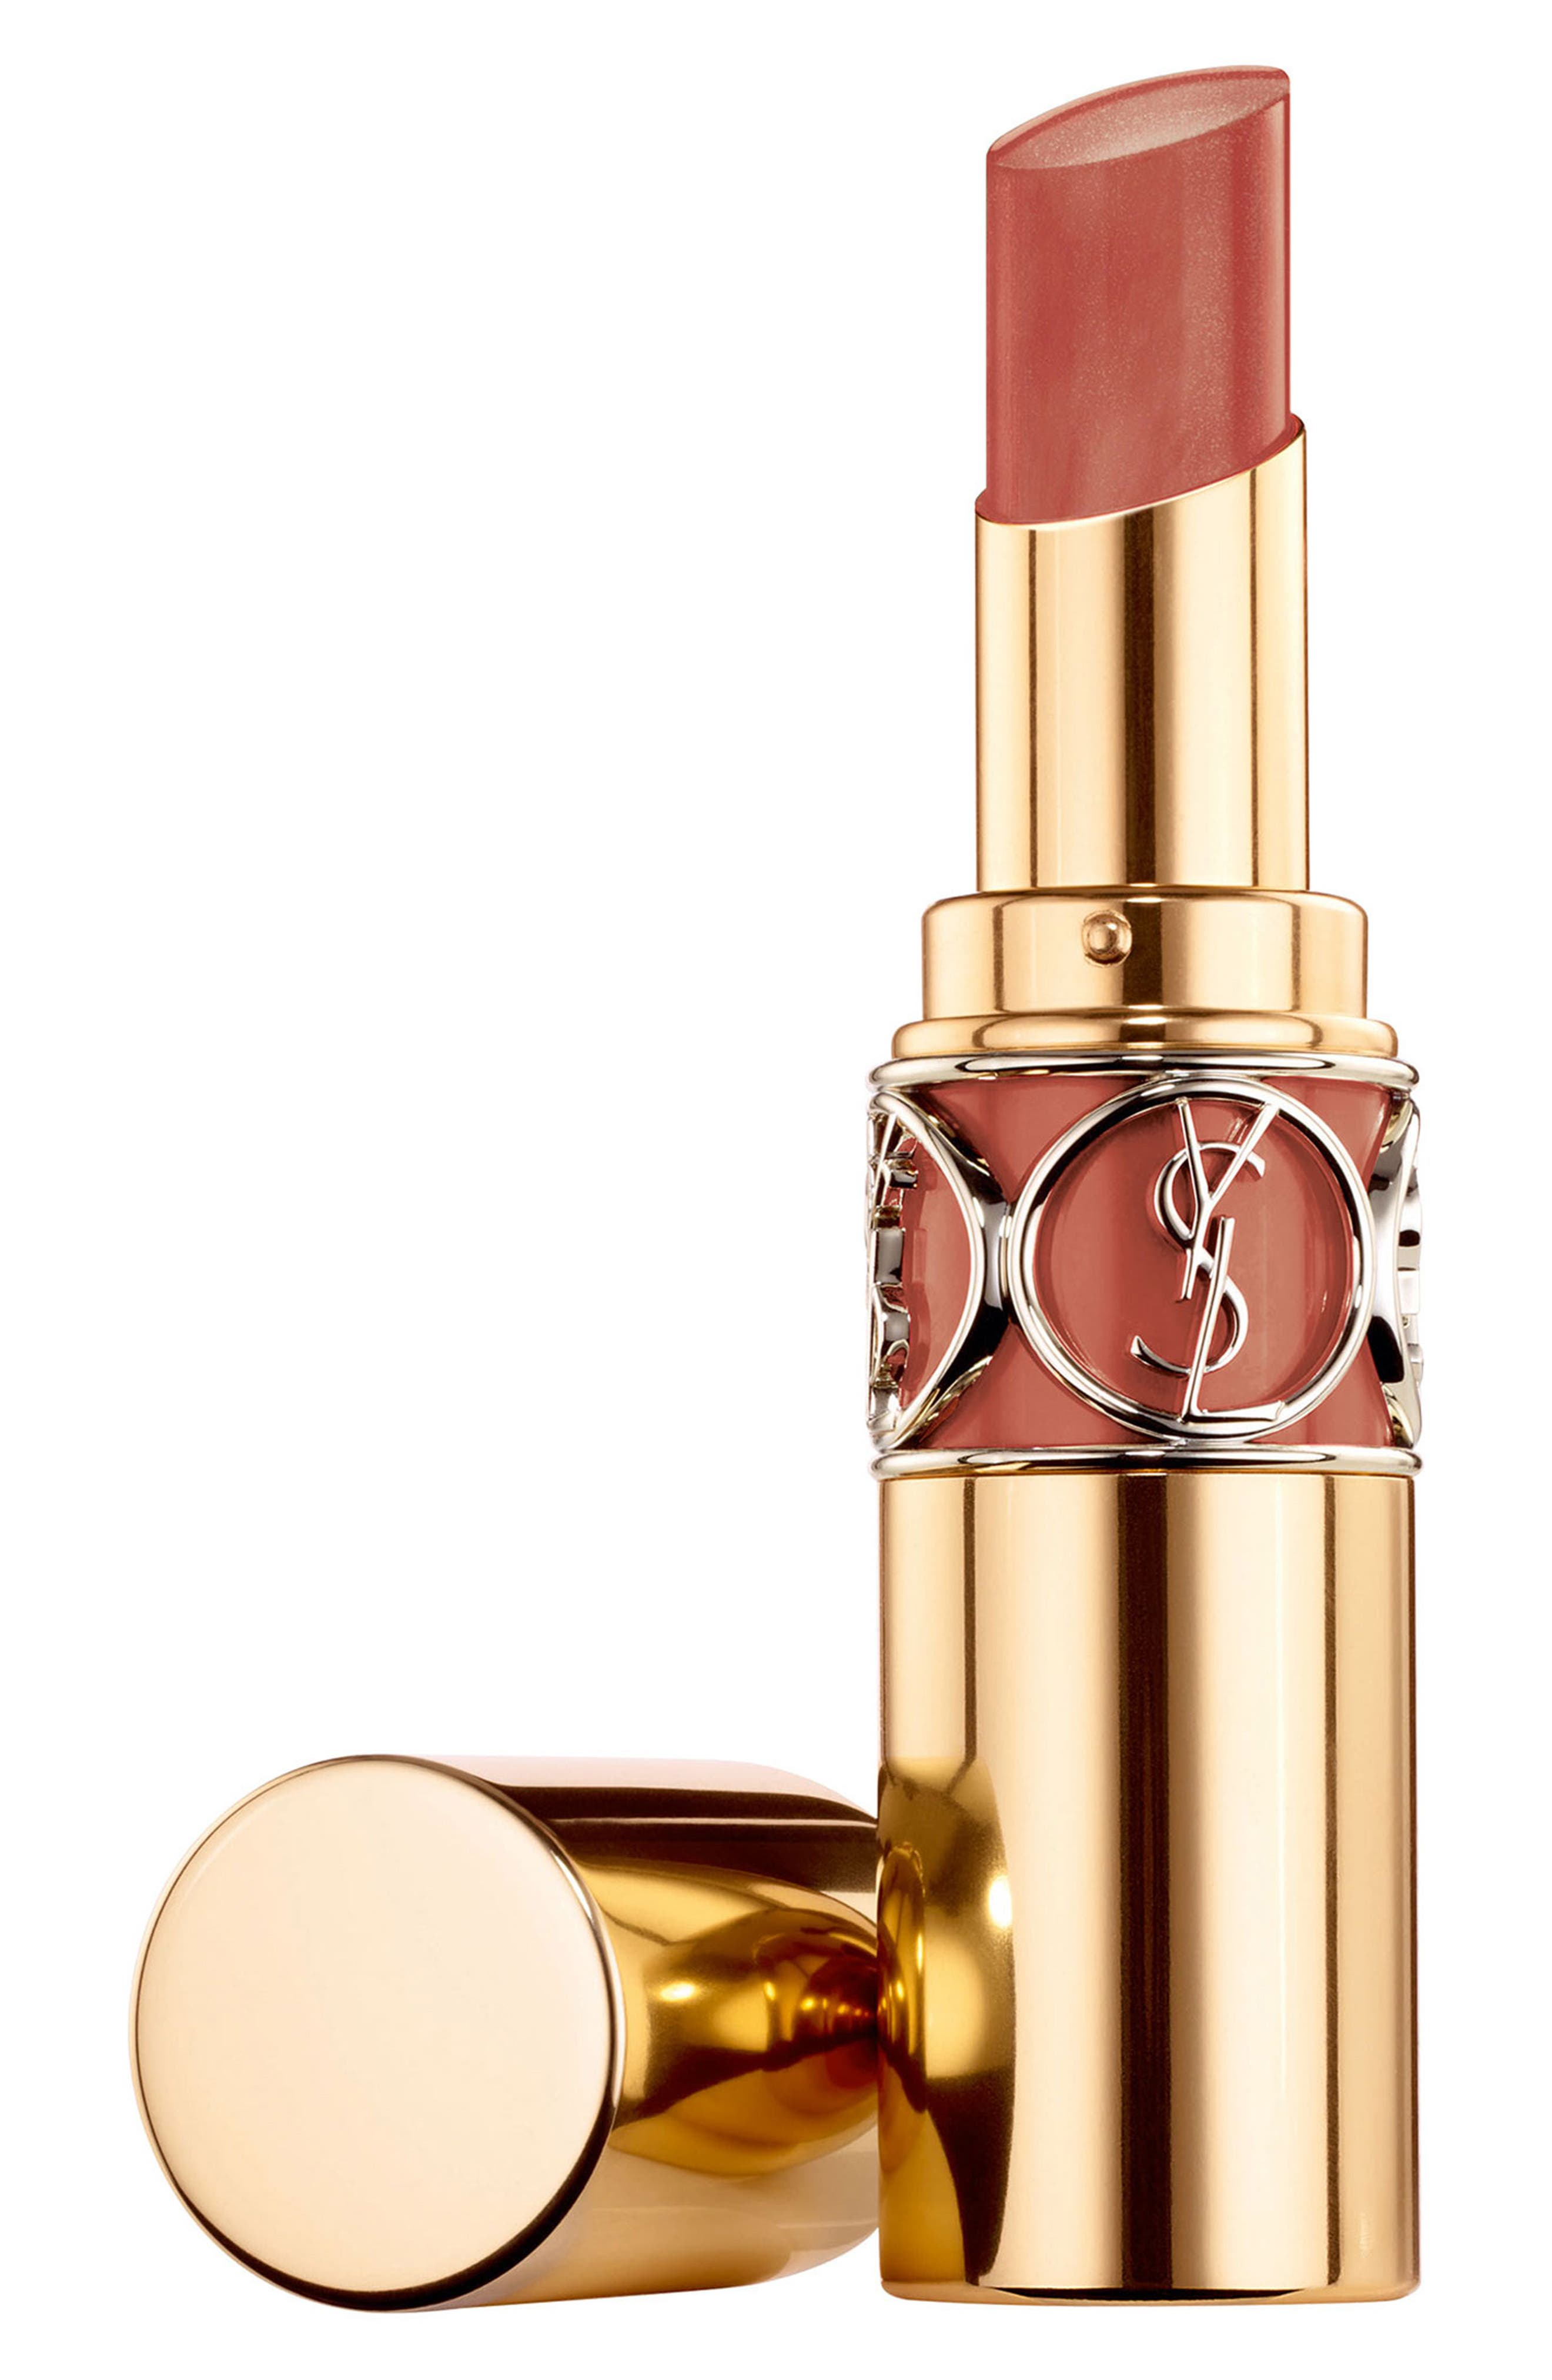 Yves Saint Laurent Rouge Volupte Shine Oil-In-Stick Lipstick - Coral Plume